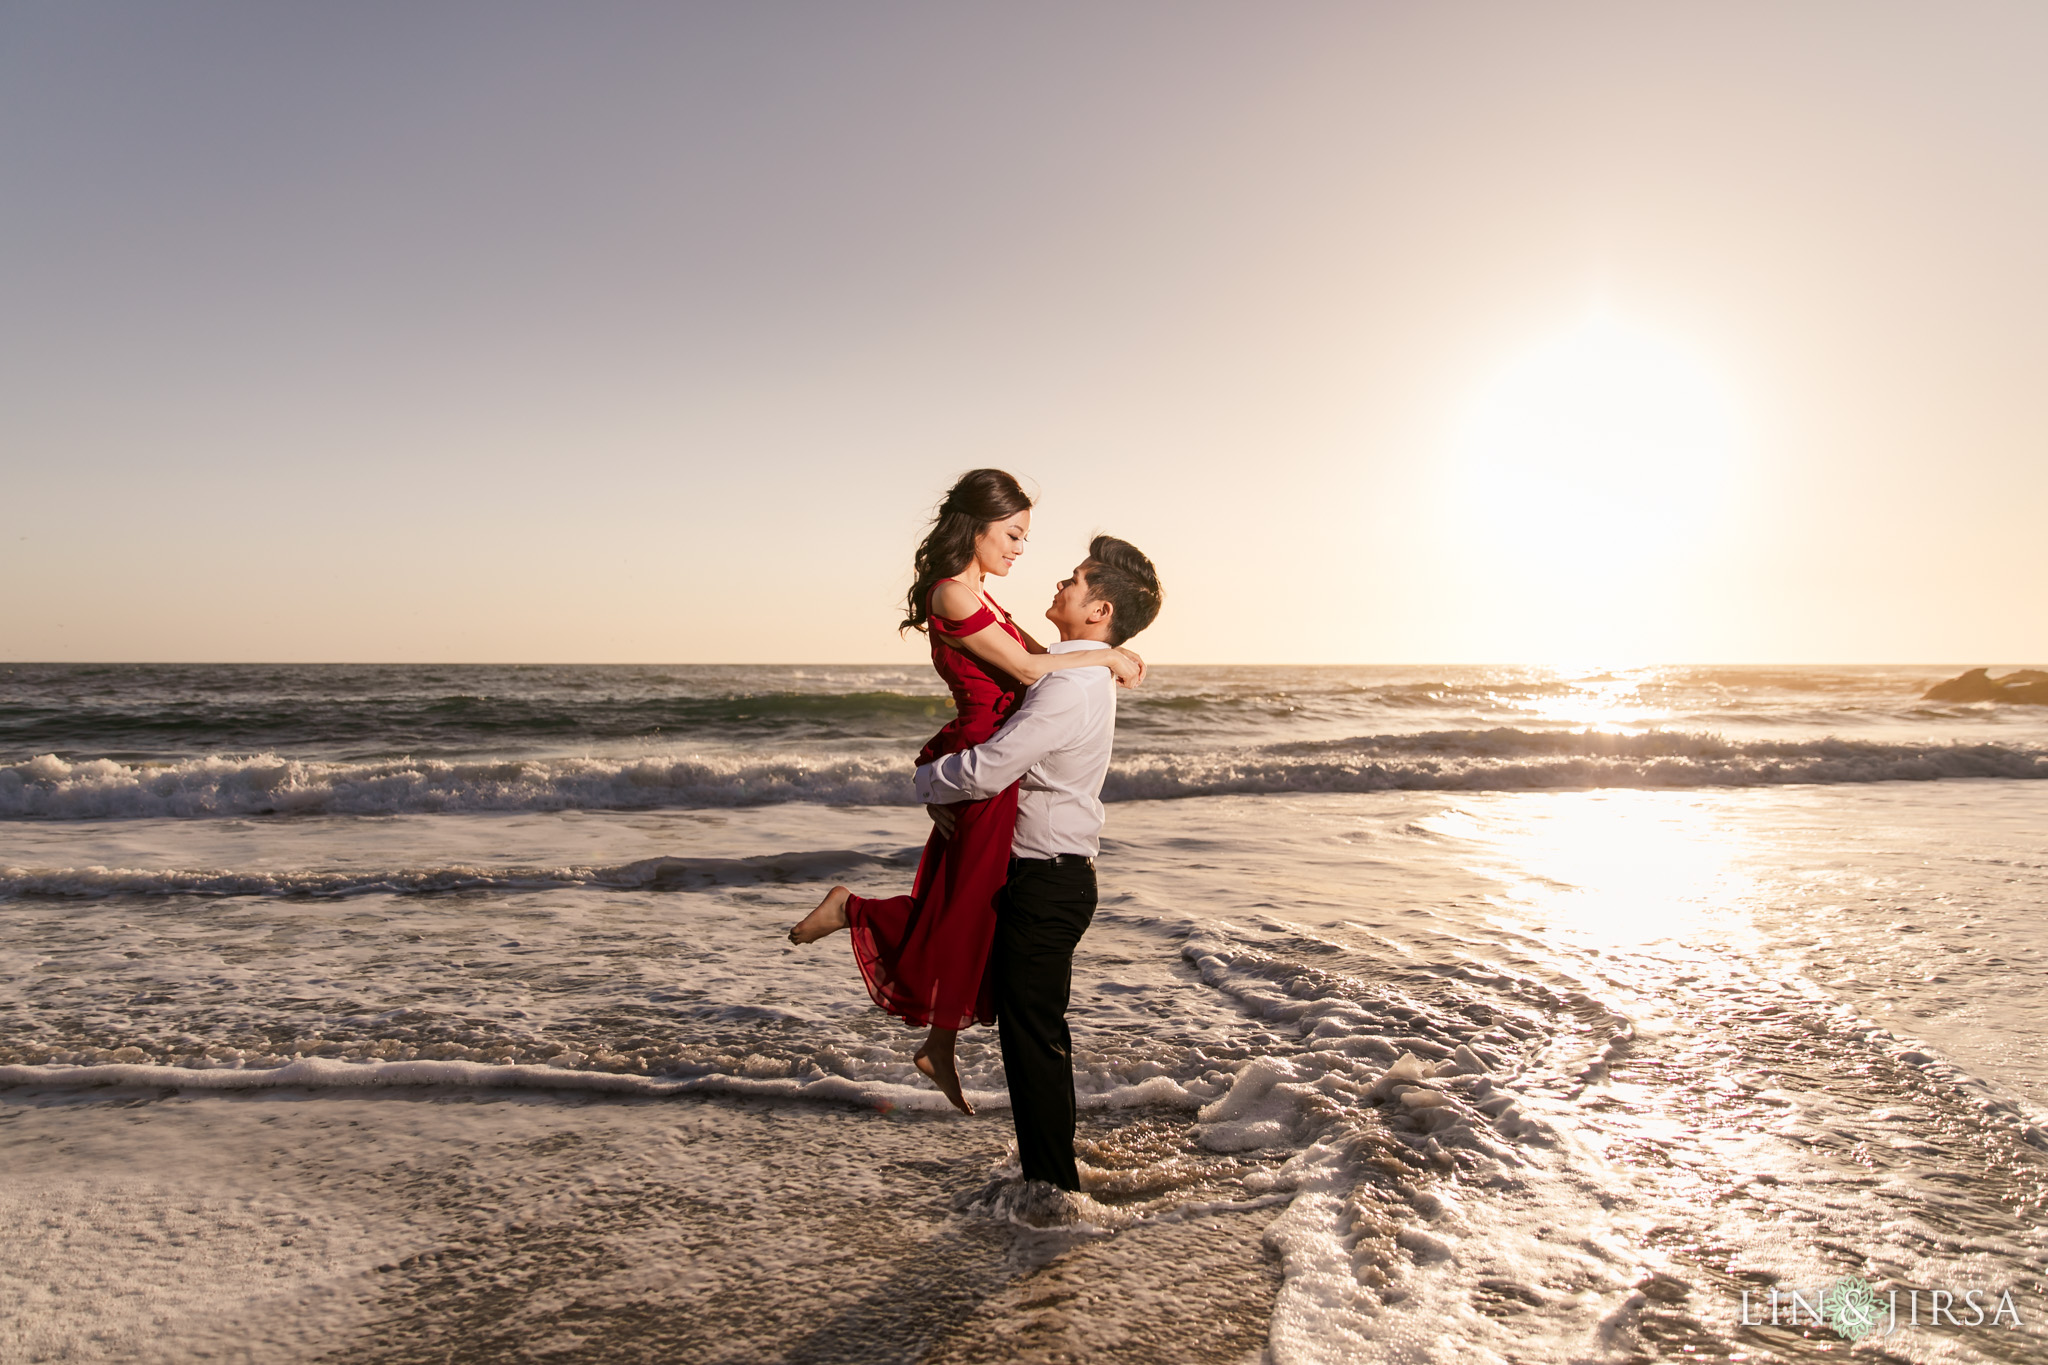 09 Victoria Beach Orange County Engagement Photography 2